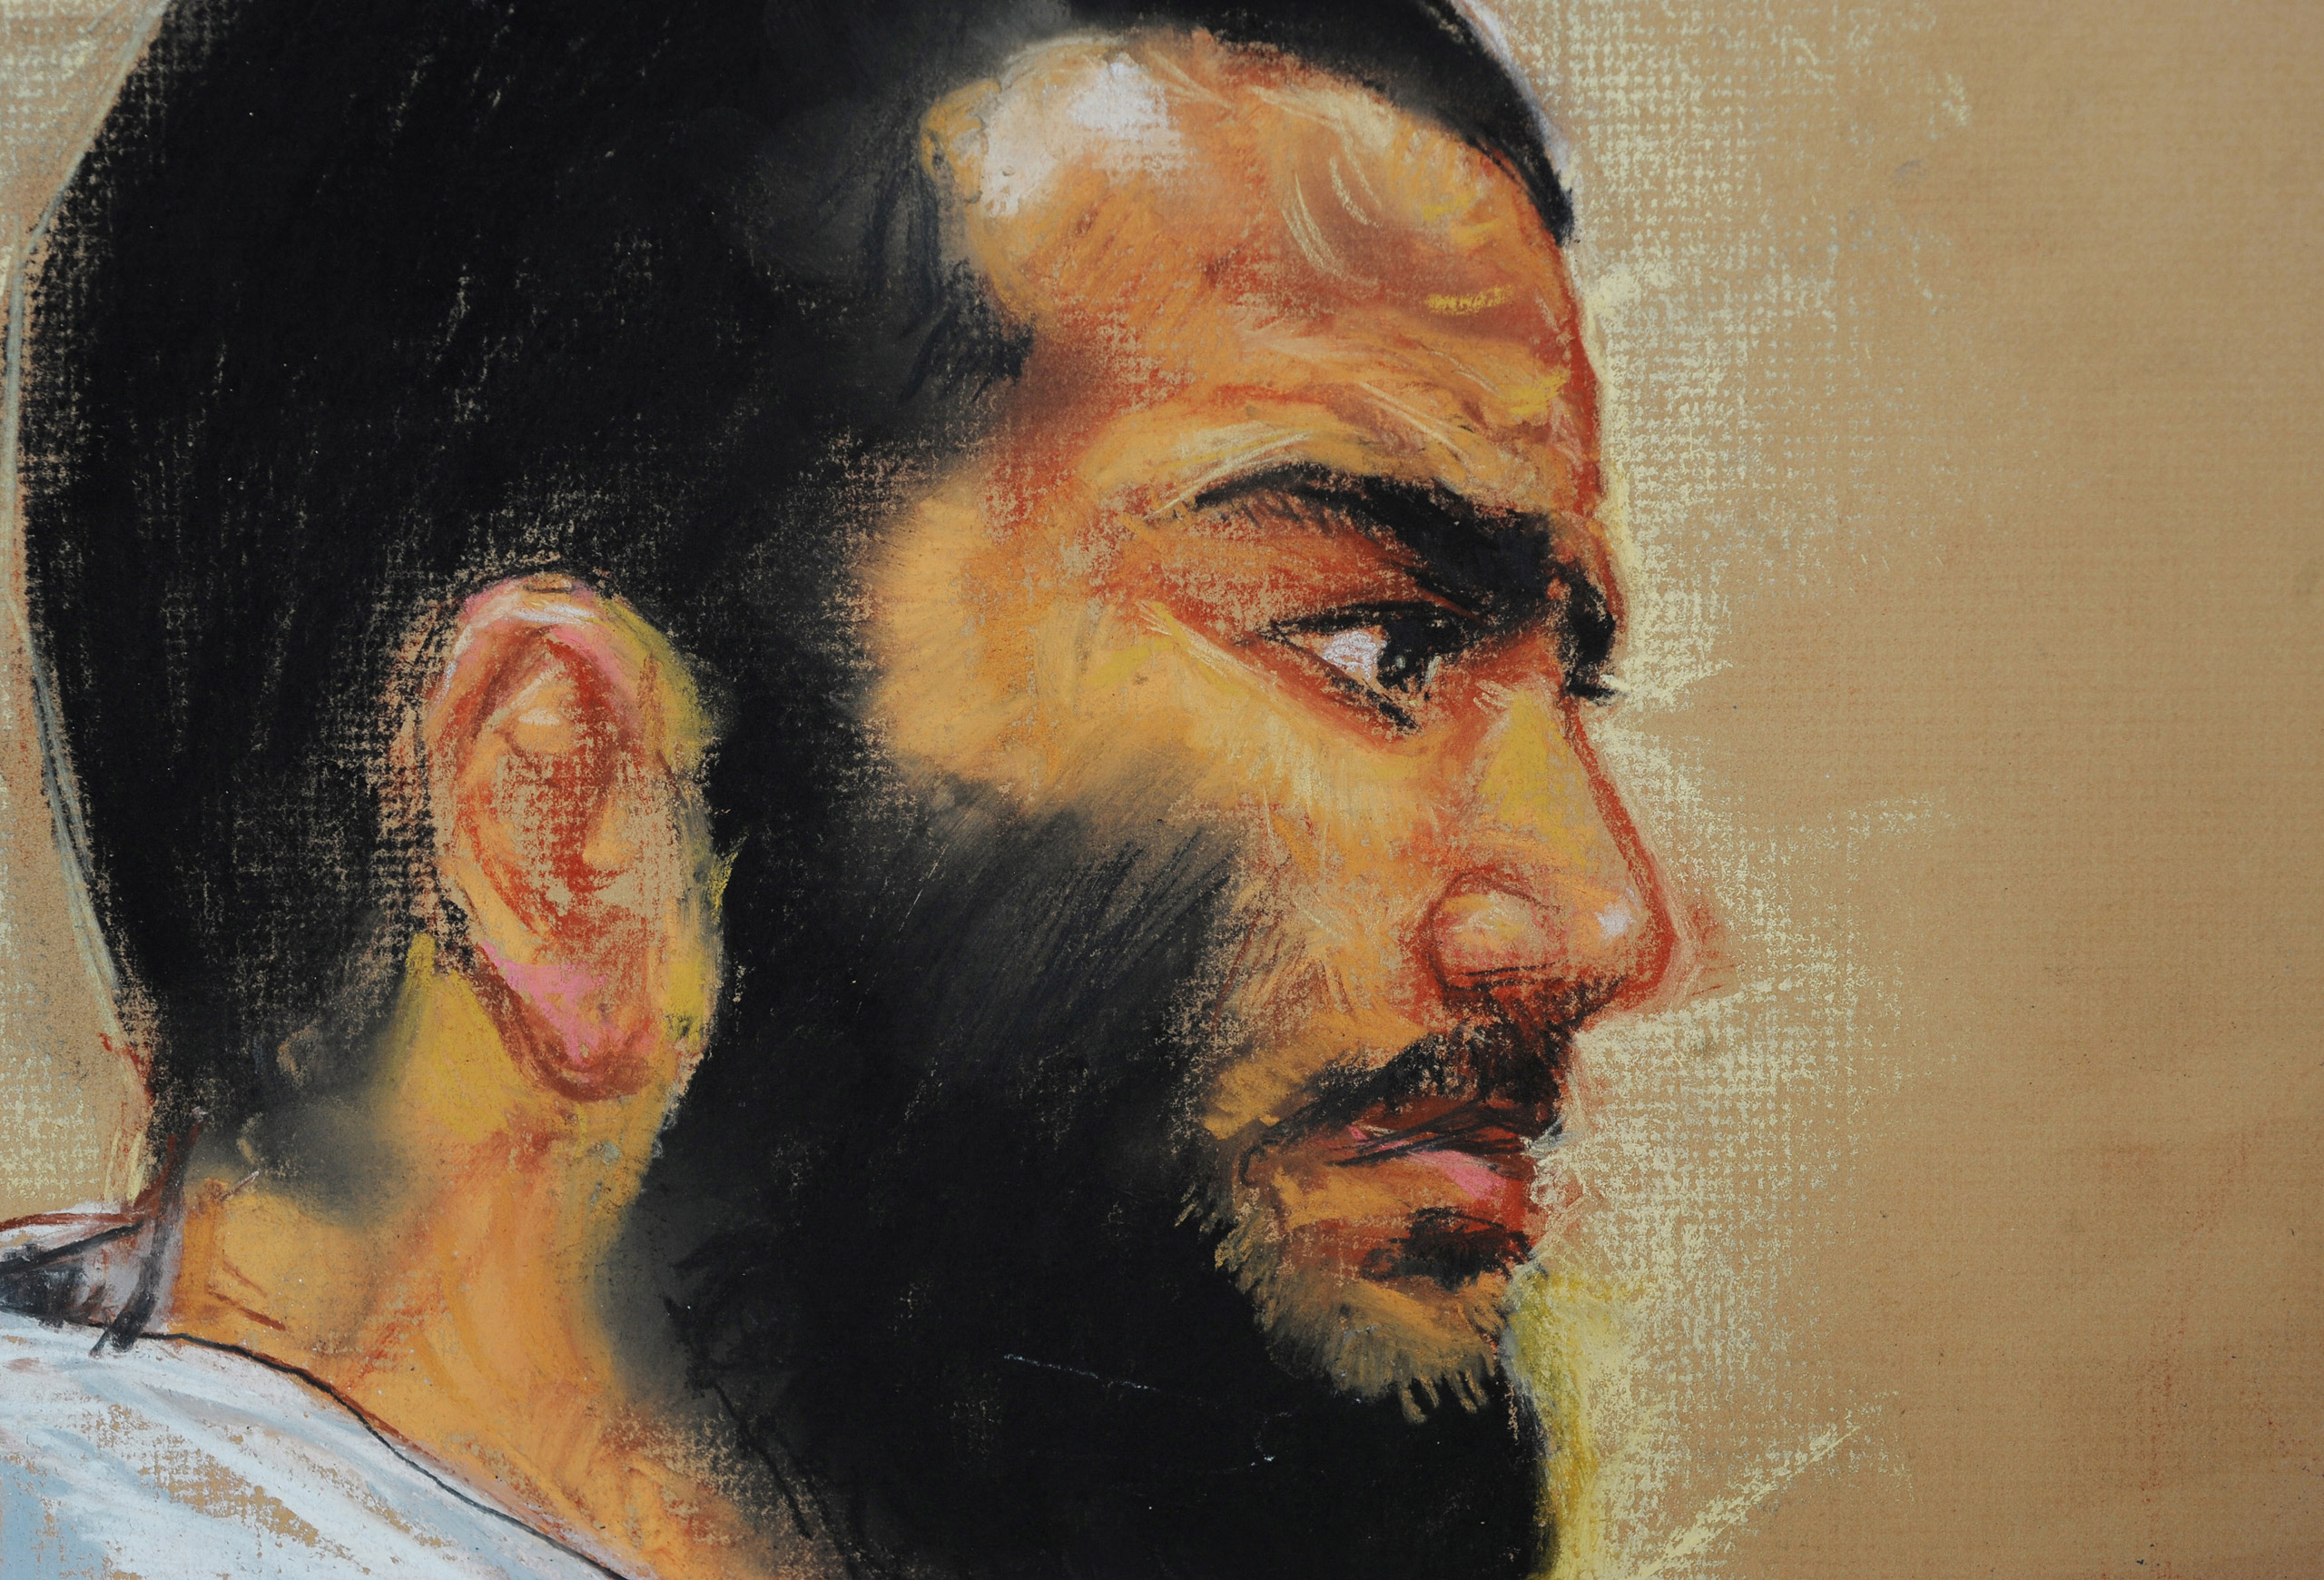 Canadian-born accused terrorist Omar Khadr attends a pre-trial session in Camp Justice on the U.S. Naval Base in Guantanamo Bay on Dec. 12, 2008. Khadr, the youngest prisoner held in Guantanamo Bay at the time at age 15, accepted an eight-year sentence.